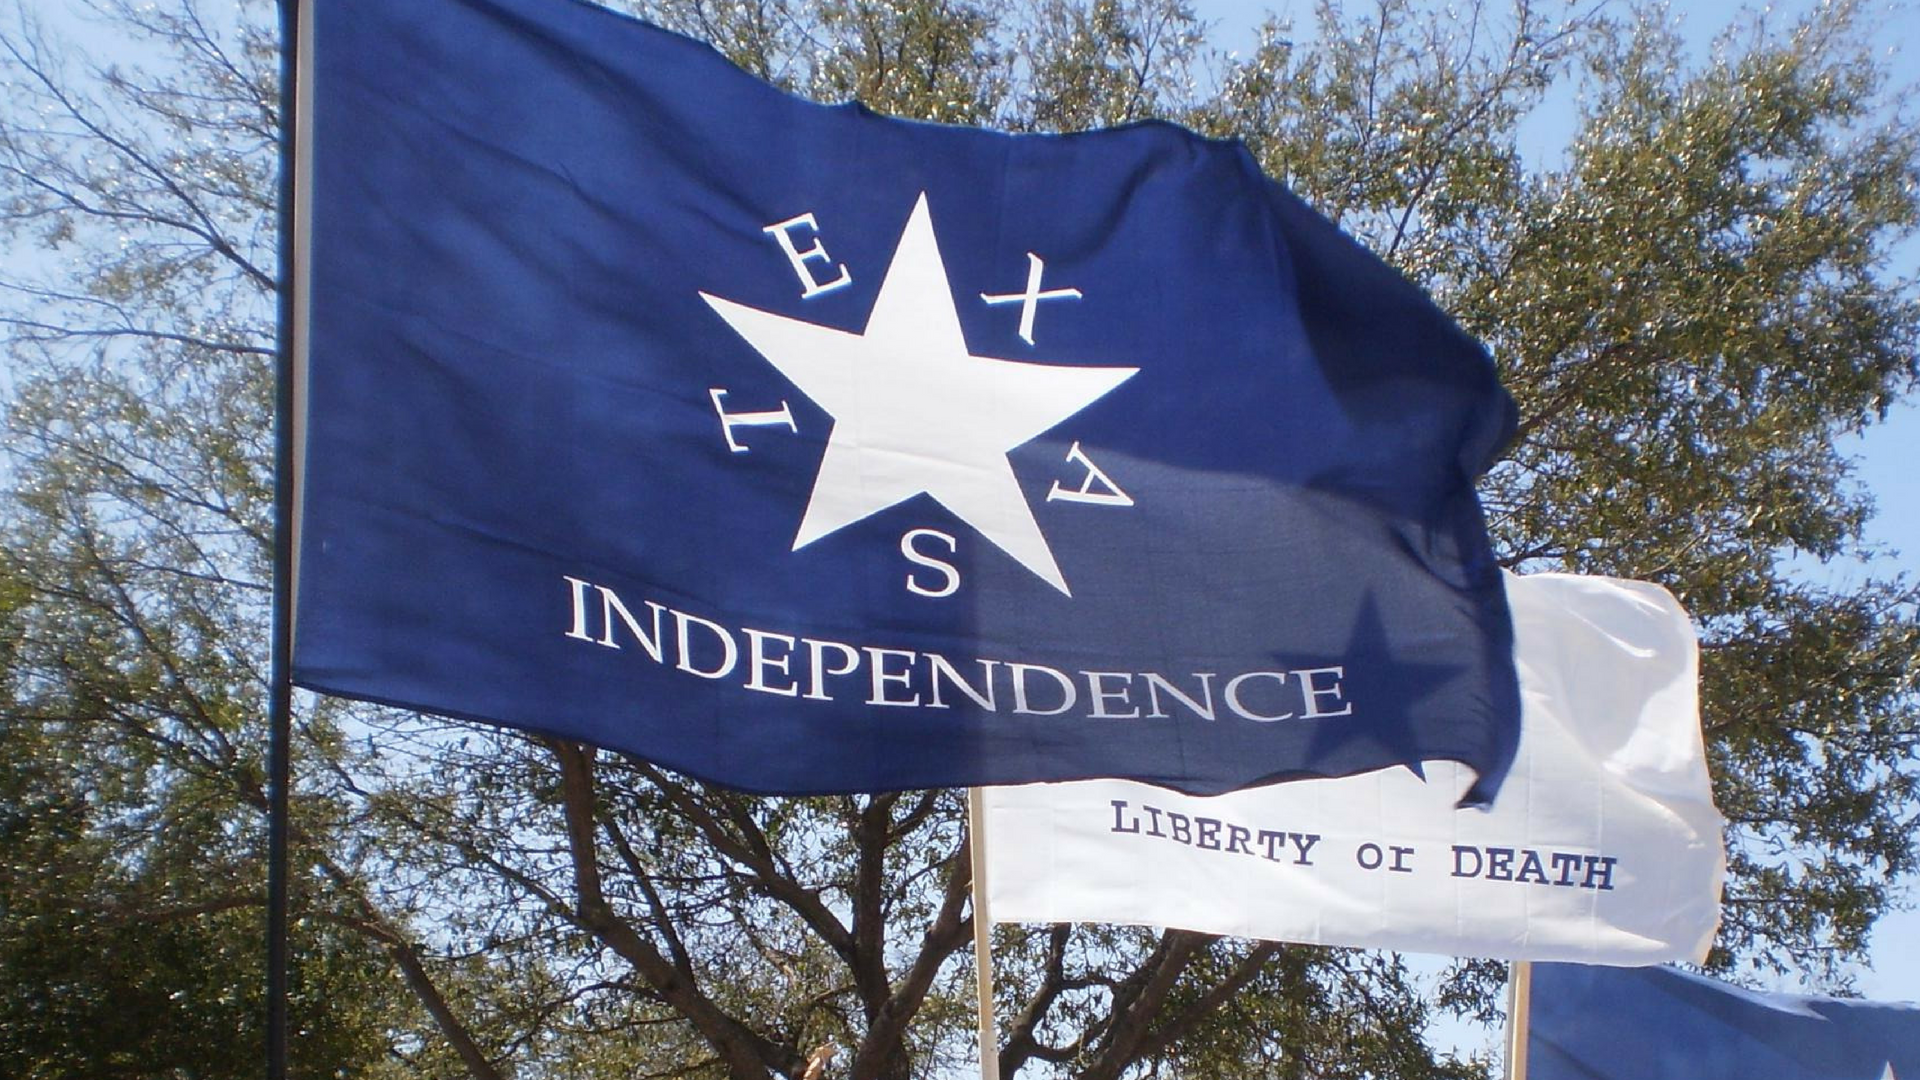 Battle Flag of Texas - Conrad's Independence Battle flag